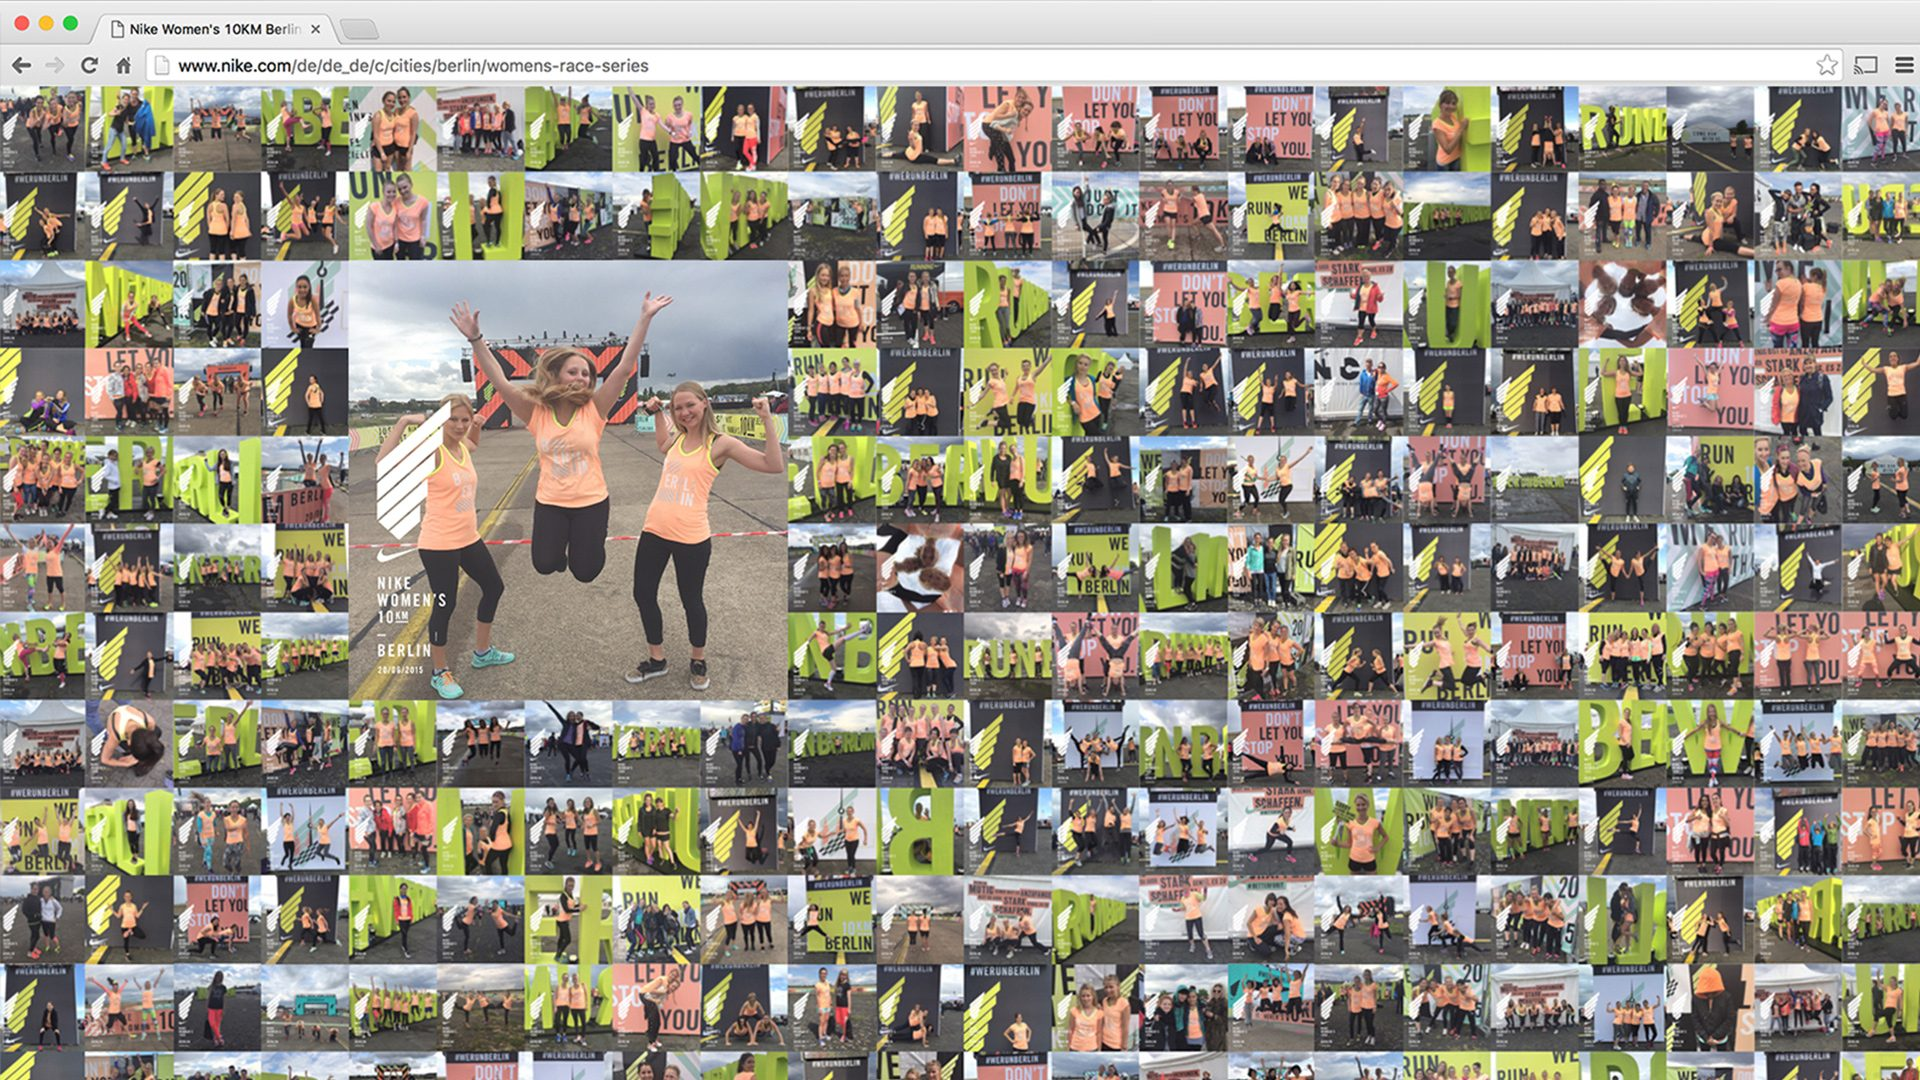 Instant access to the captured photos with the athletes starting number